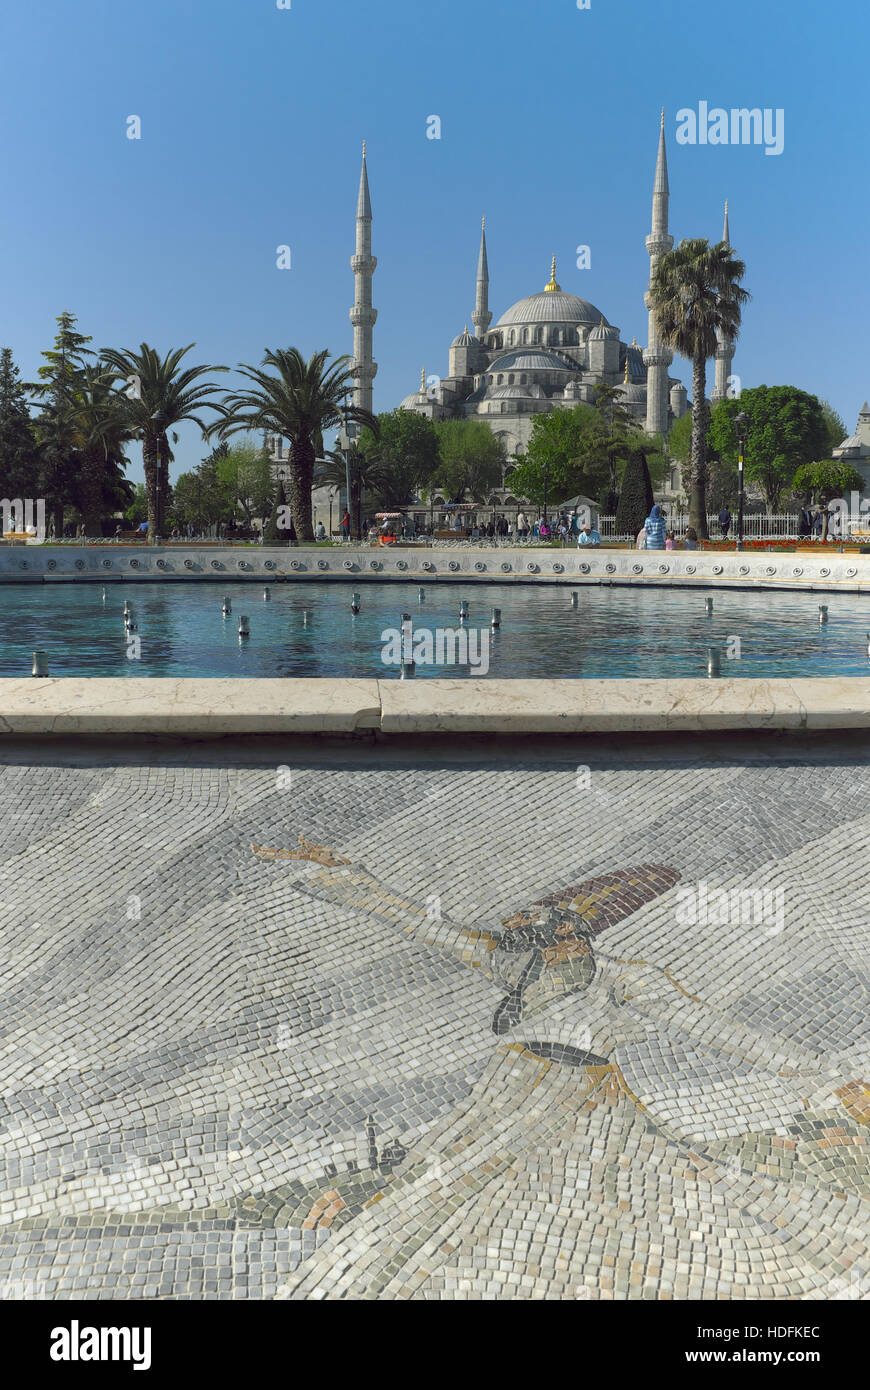 Istanbul, Turkey with the Hagia Sophia in the background and a fountain surrounding by a mosaic whirling dervish - Stock Image